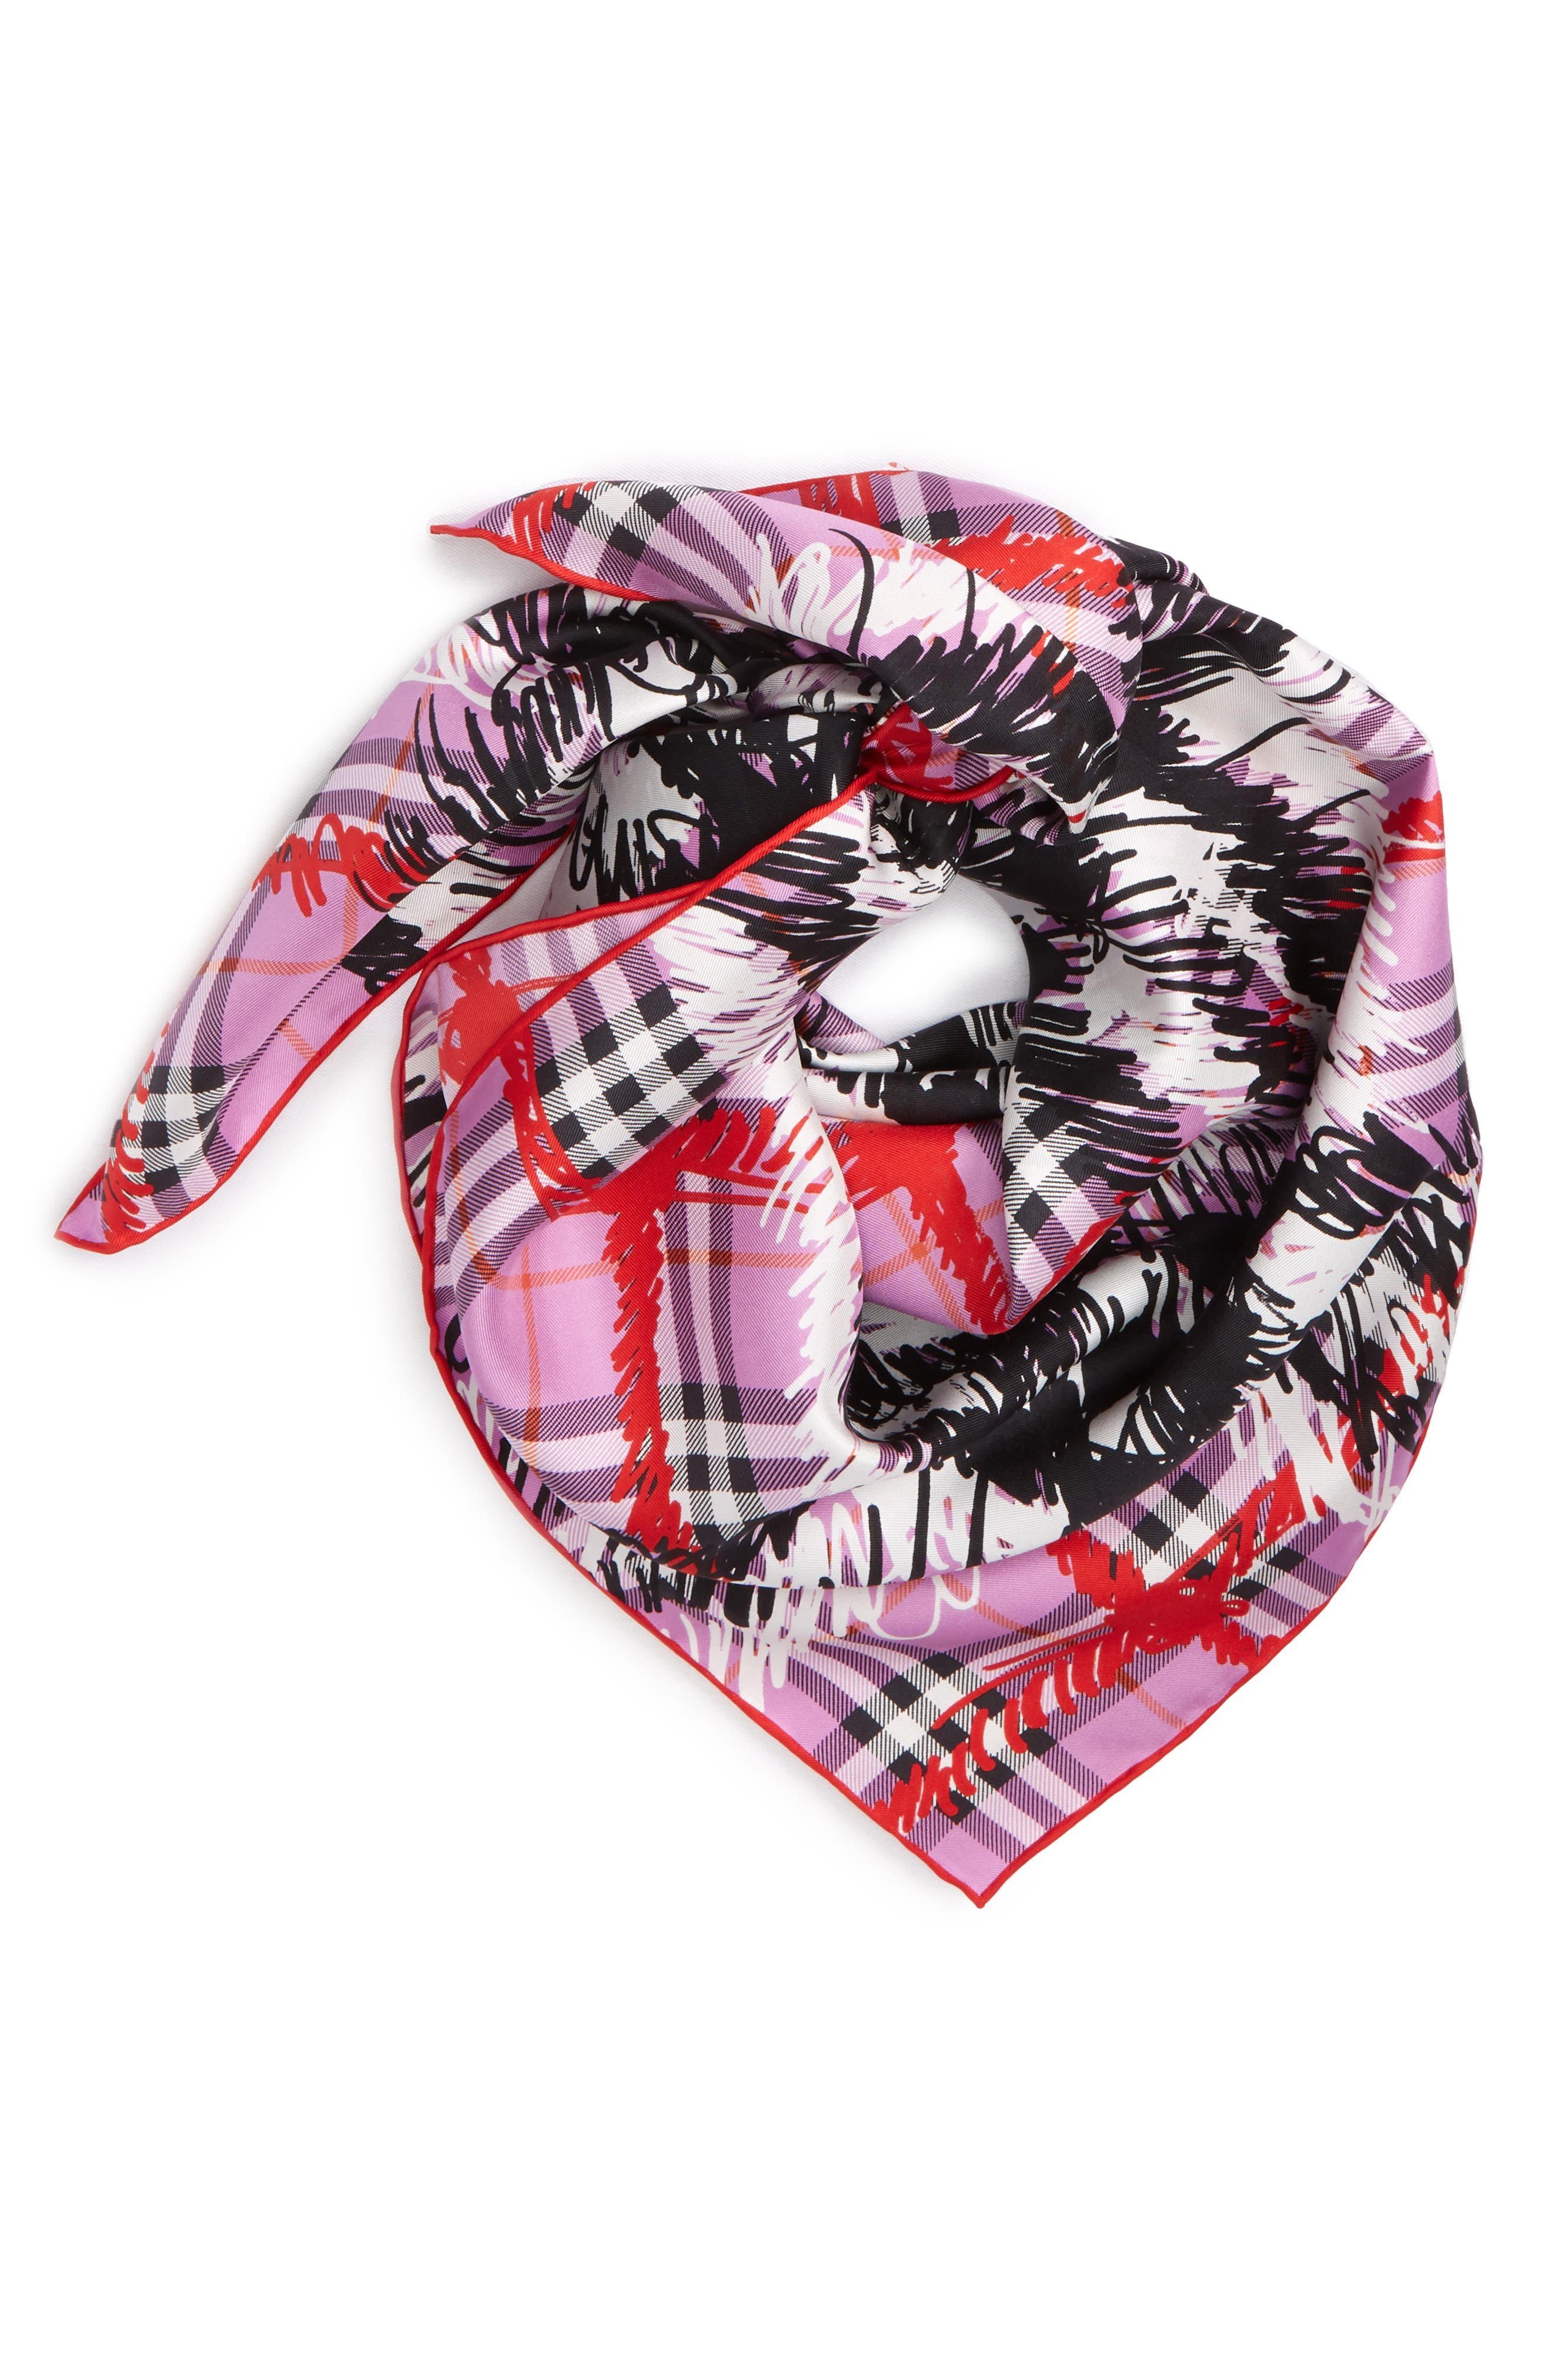 Scribble Vintage Check Silk Square Scarf,                         Main,                         color, Fuchsia Pink